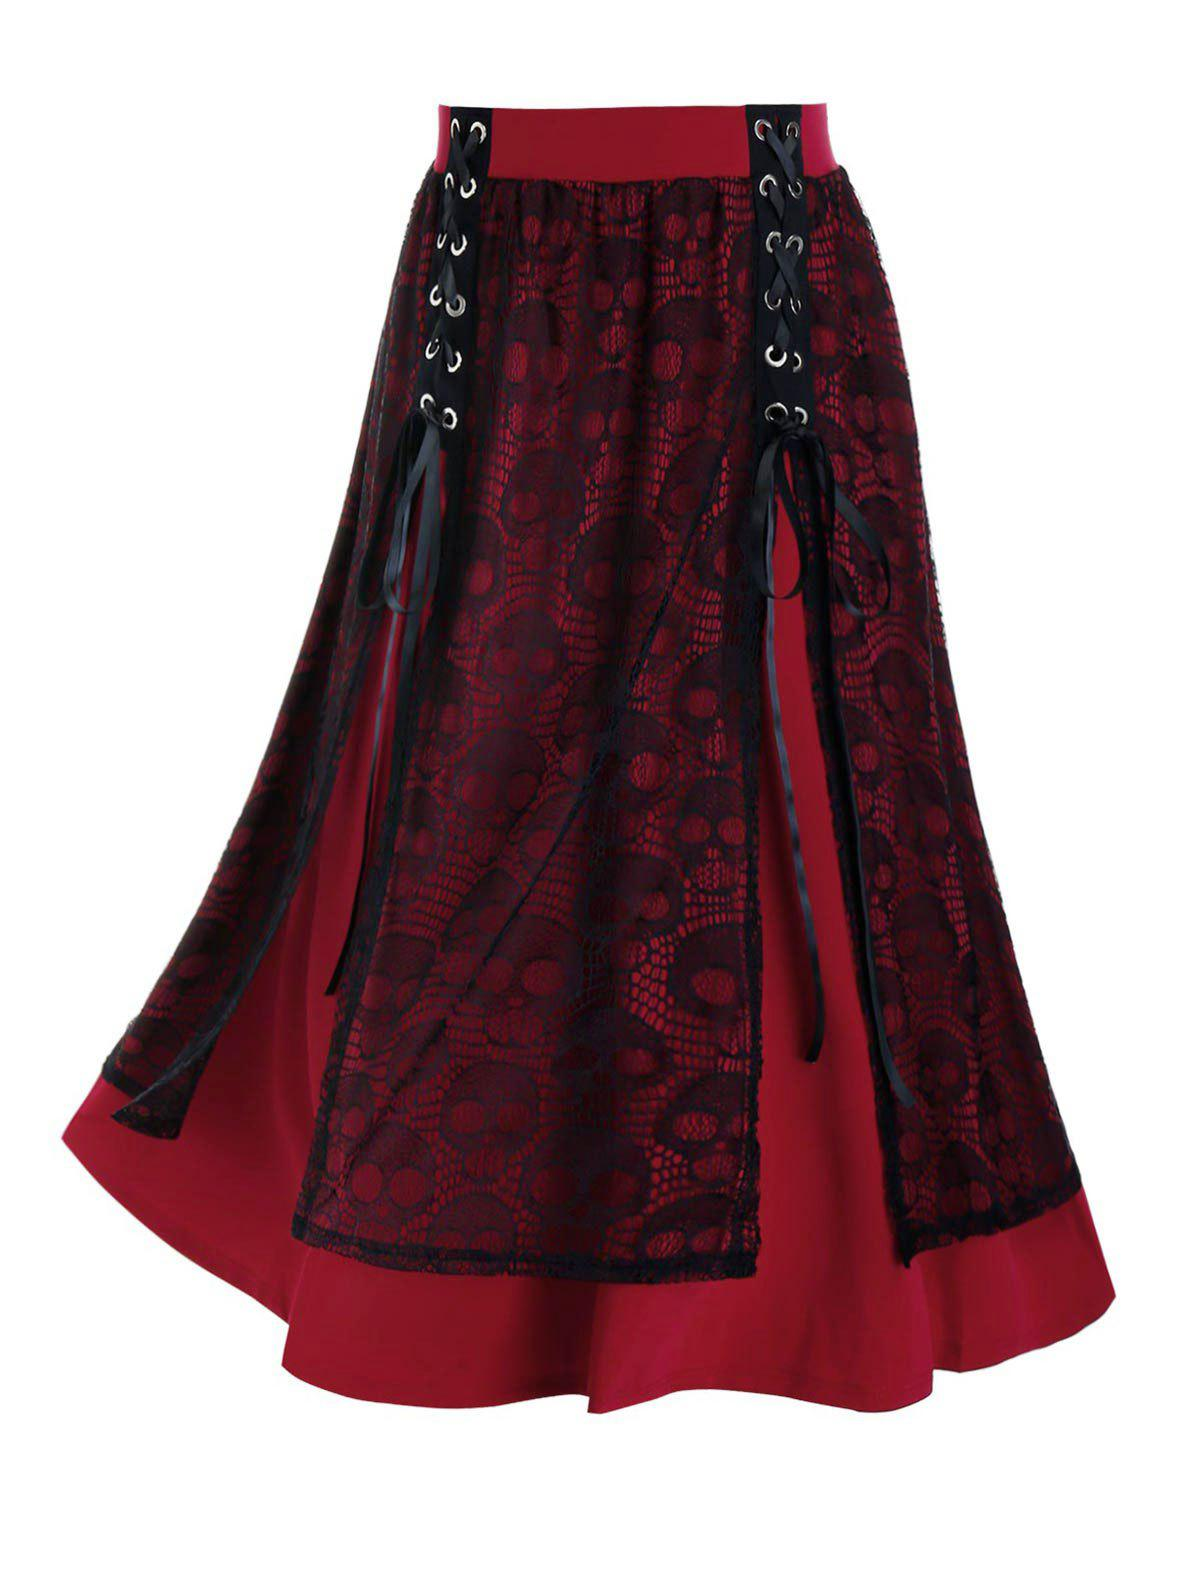 Plus Size Skull Lace A Line Lace-up Skirt - RED WINE 2X